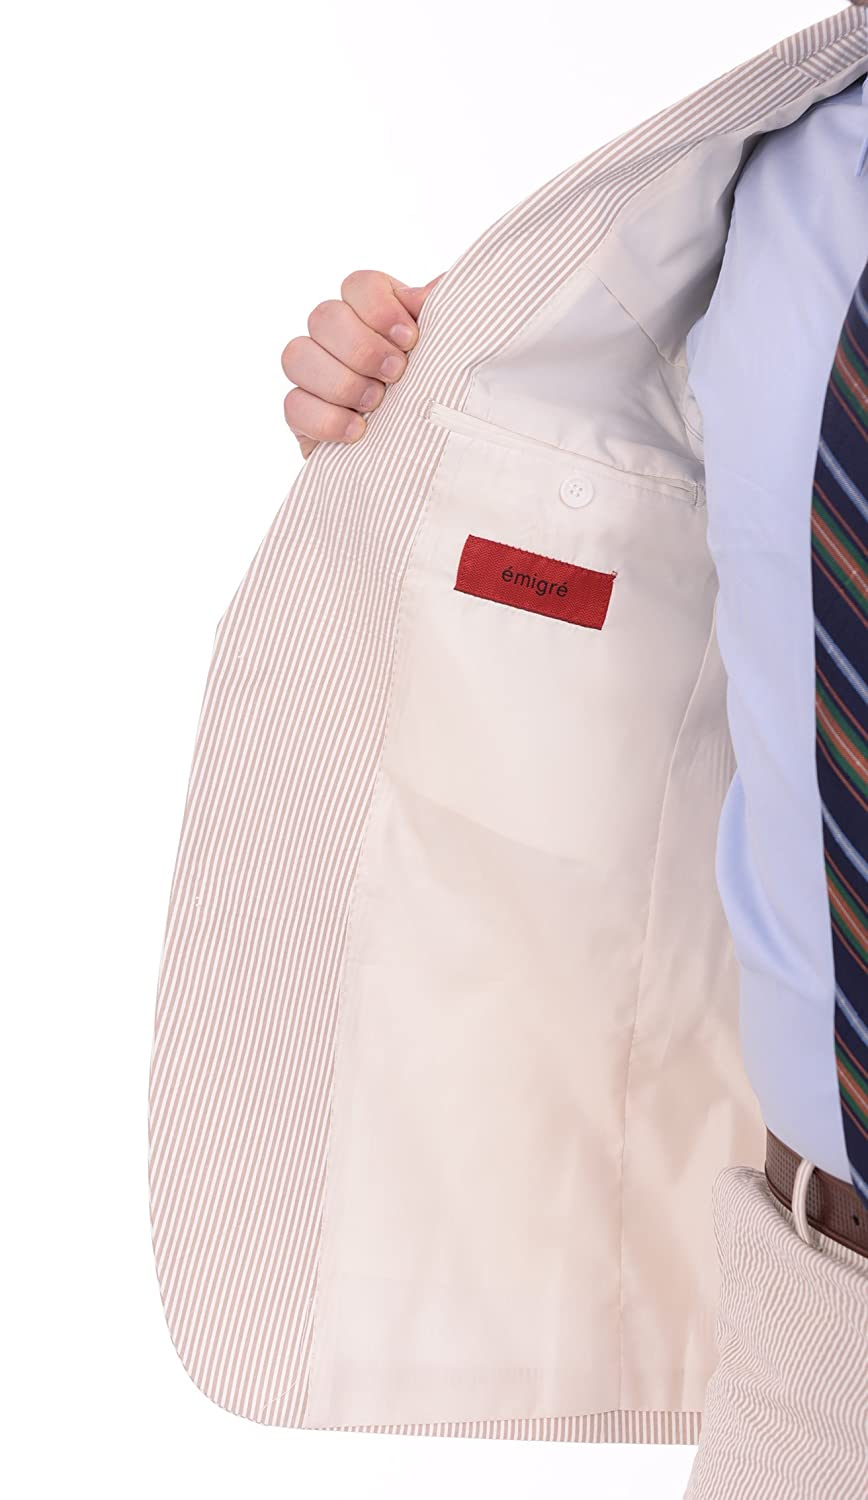 Emigre Mens Tan and White Striped Seersucker Two Button Cotton Suit